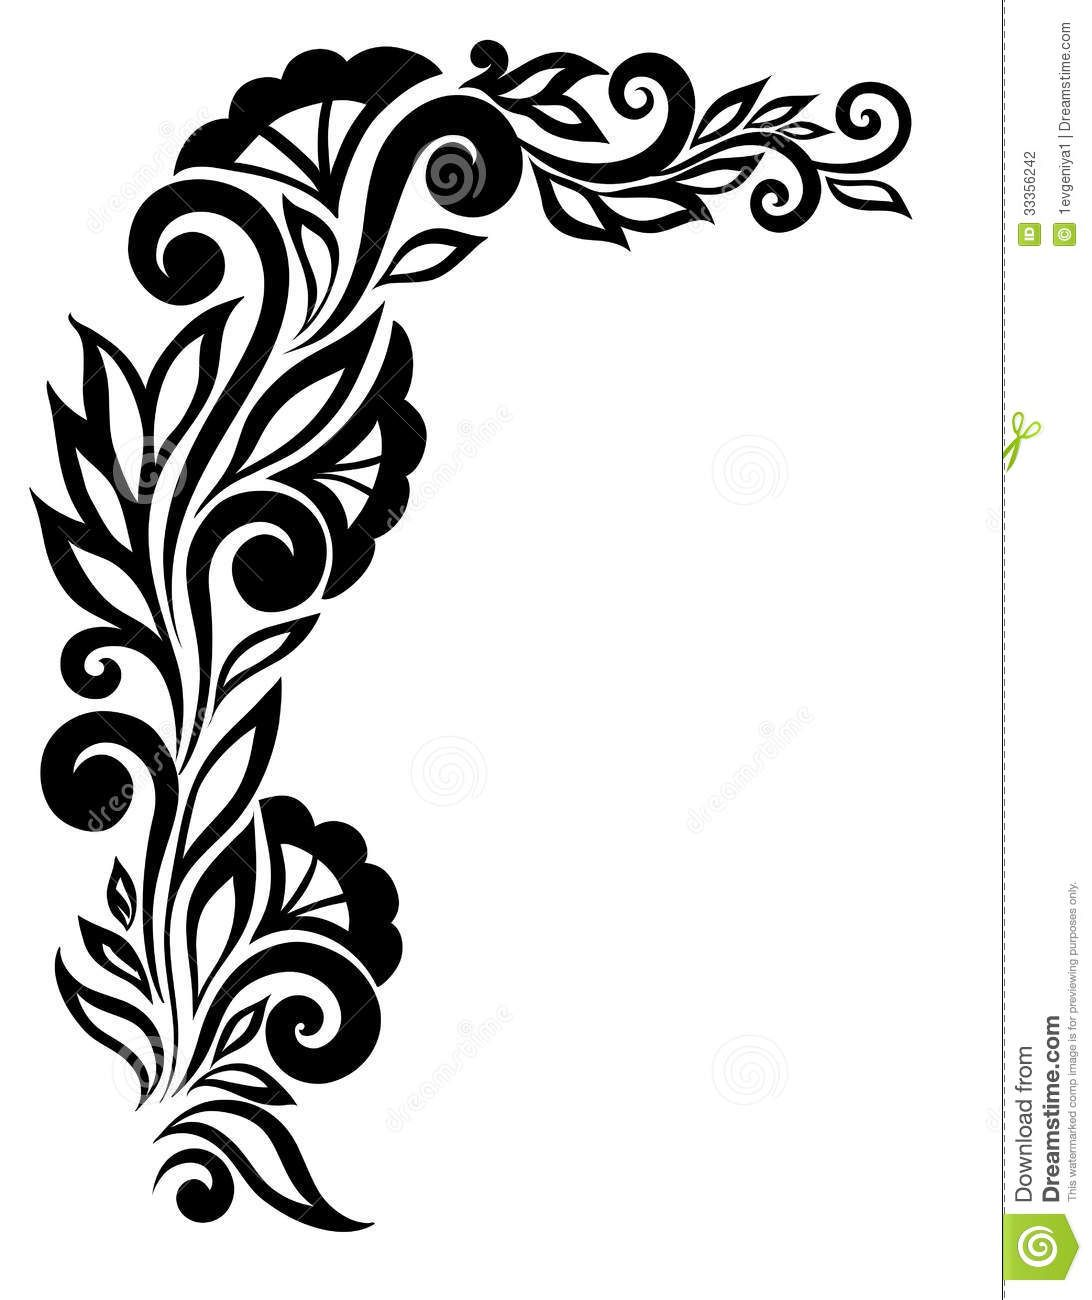 Black And White Border Designs For Projects Google Search Border